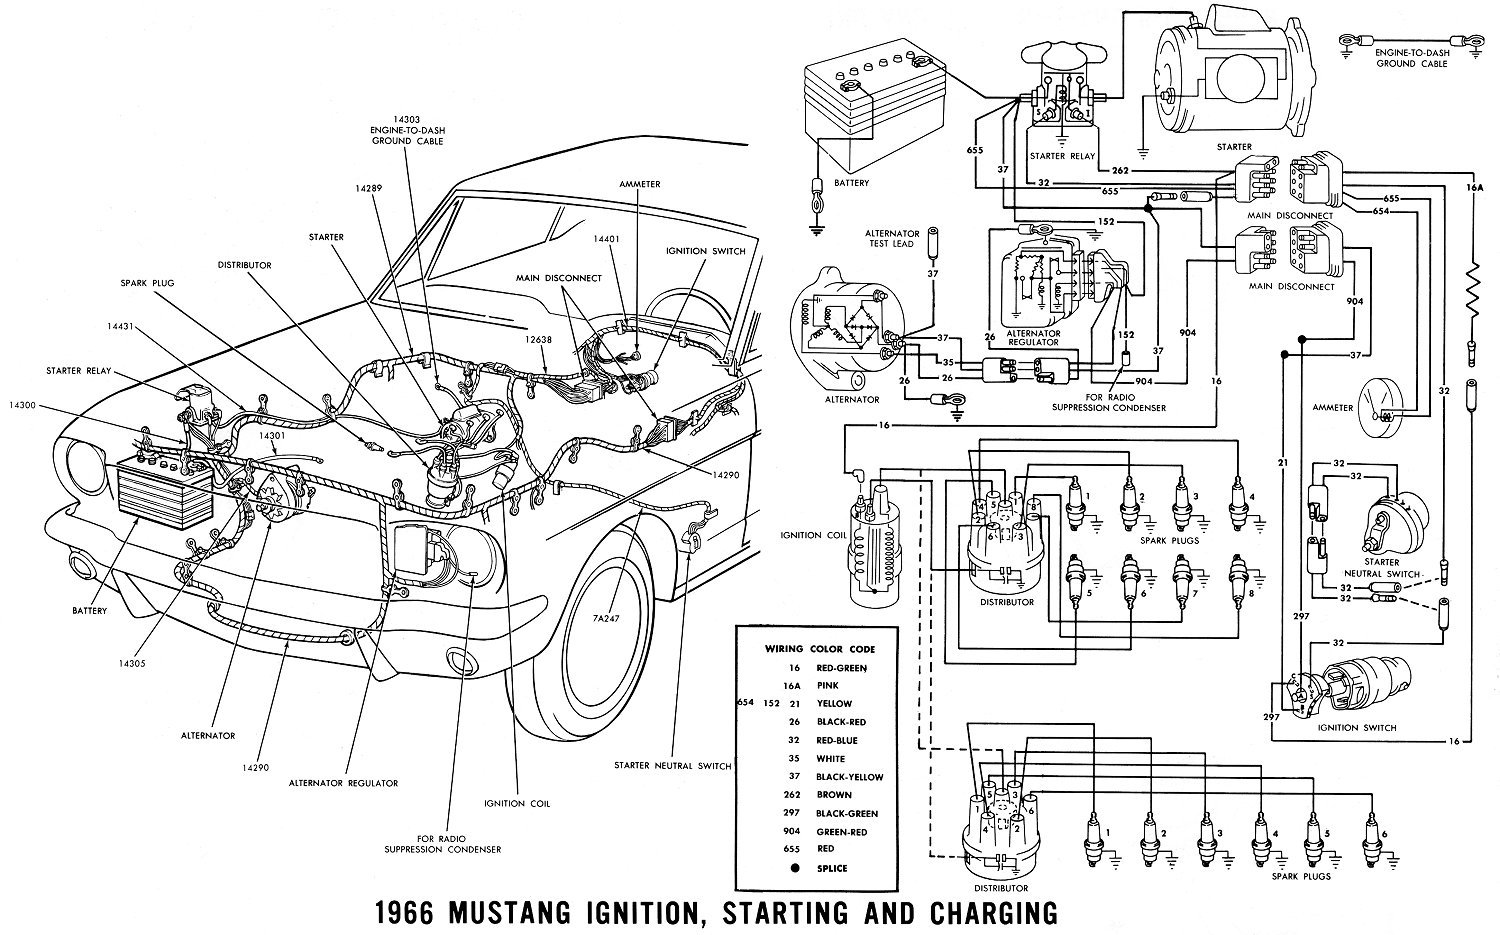 Classic Auto Air Installation Diagrams Nice Place To Get Wiring Old Diagram Images Gallery